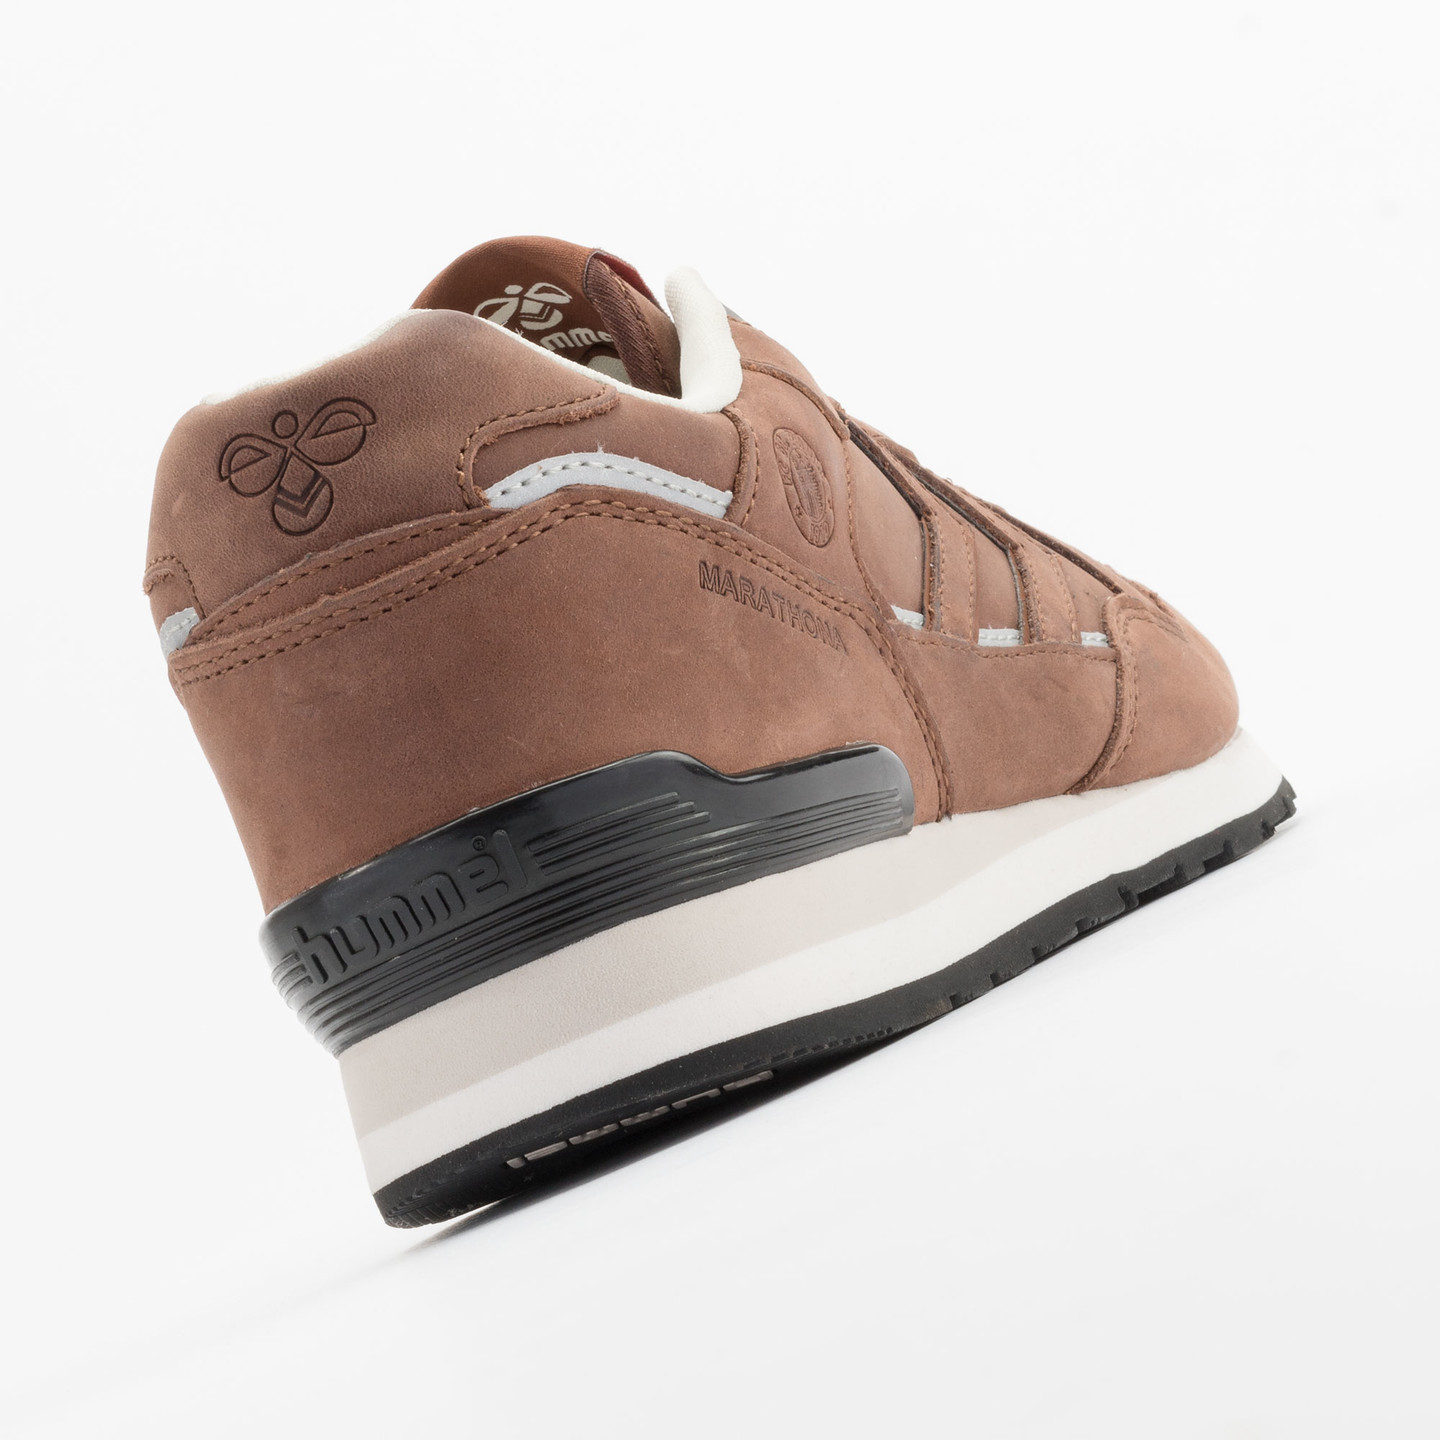 Hummel Marathona Low x St.Pauli Dark Brown 63-821-8225-40